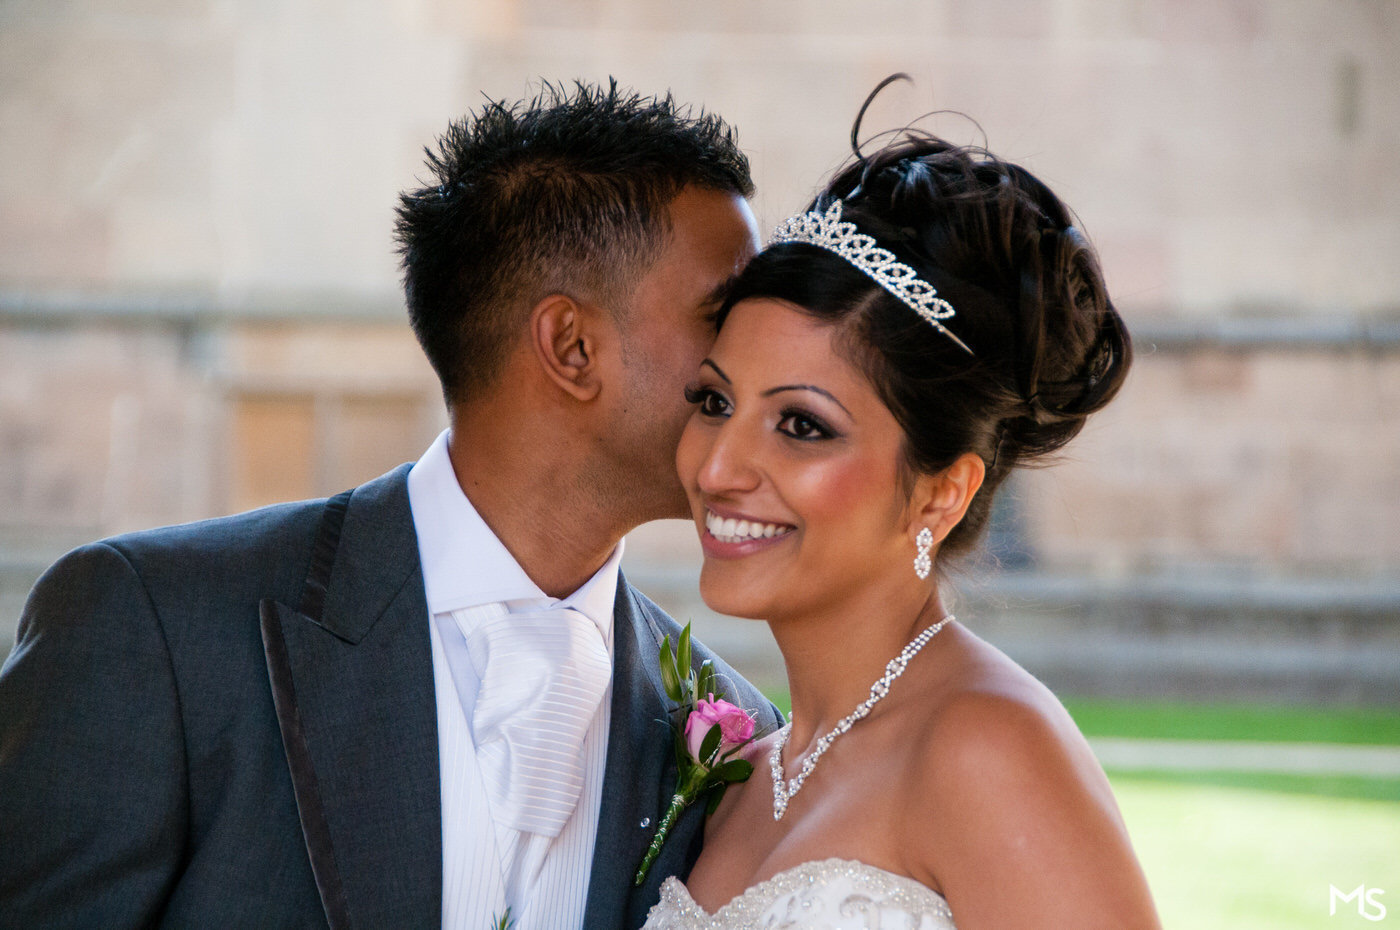 Bolsover-Castle-Indian-wedding - 20_DSC_5032.jpg